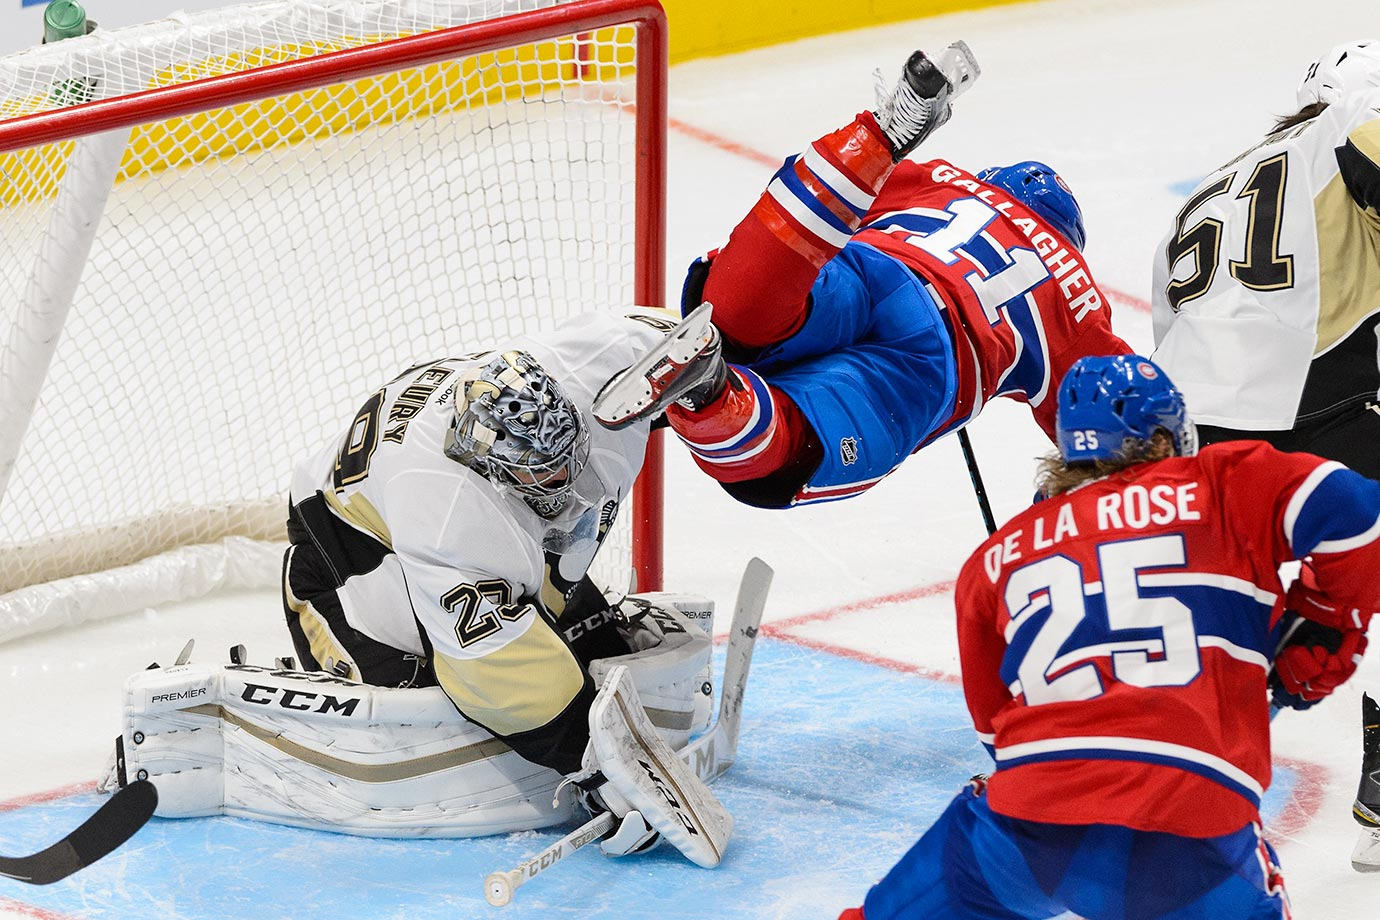 Brendan Gallagher of the Montreal Canadiens takes flight over goaltender Marc-Andre Fleury of Pittsburgh.